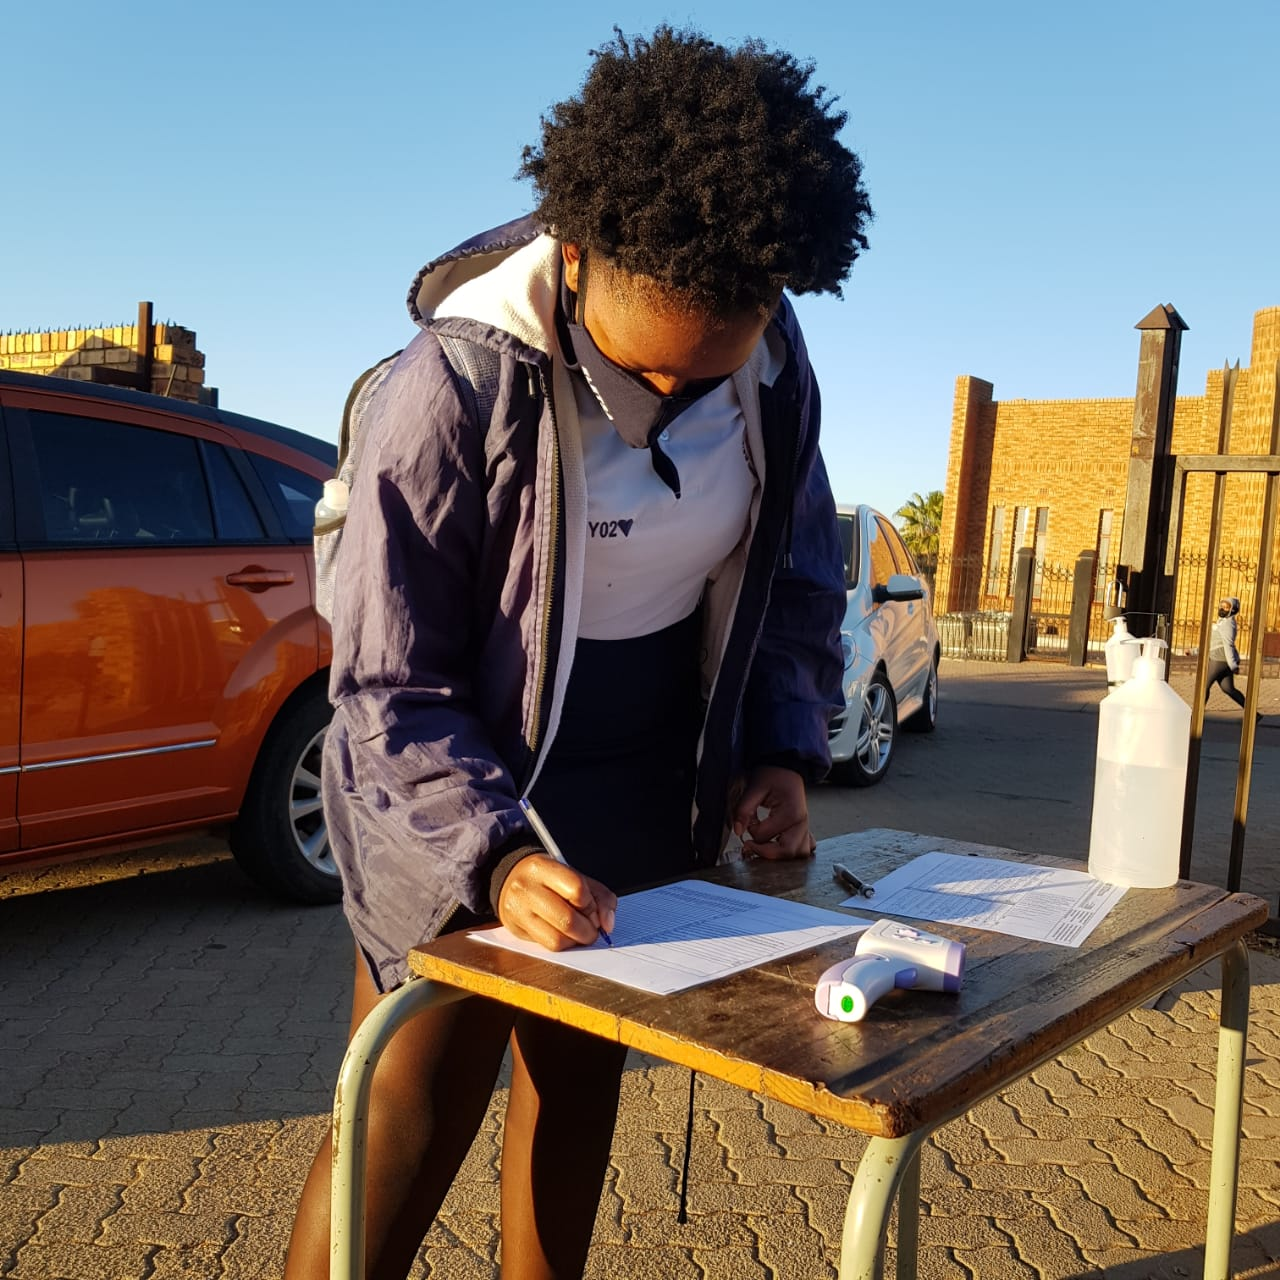 Motshekga: Part of 2020 curriculum moves to 2021